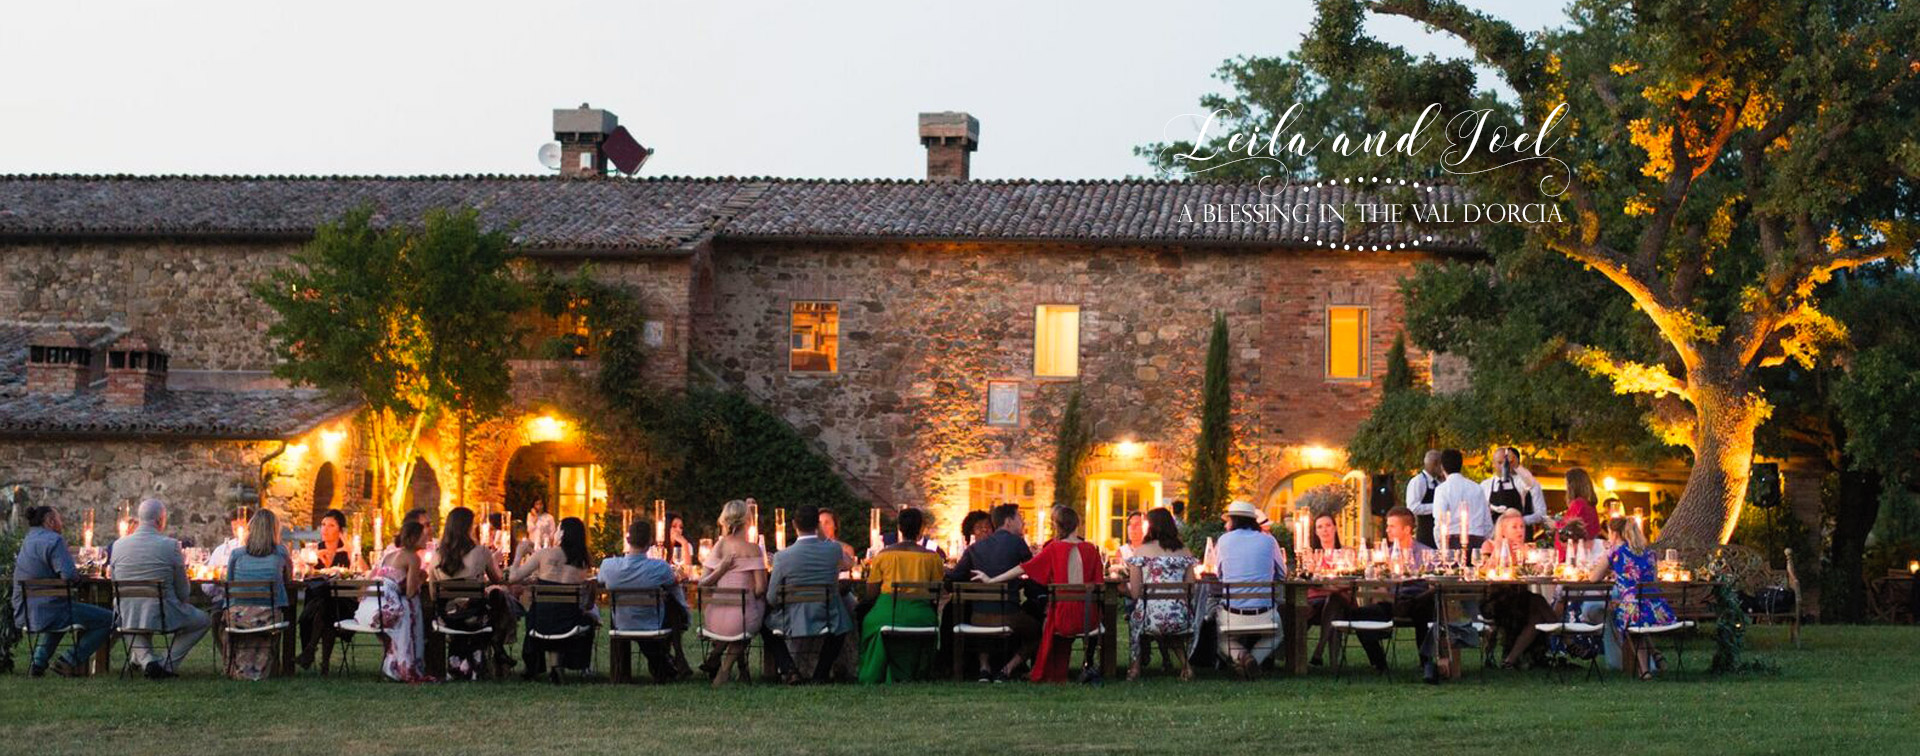 Stylish wedding Pienza Val D'Orcia villa lighting